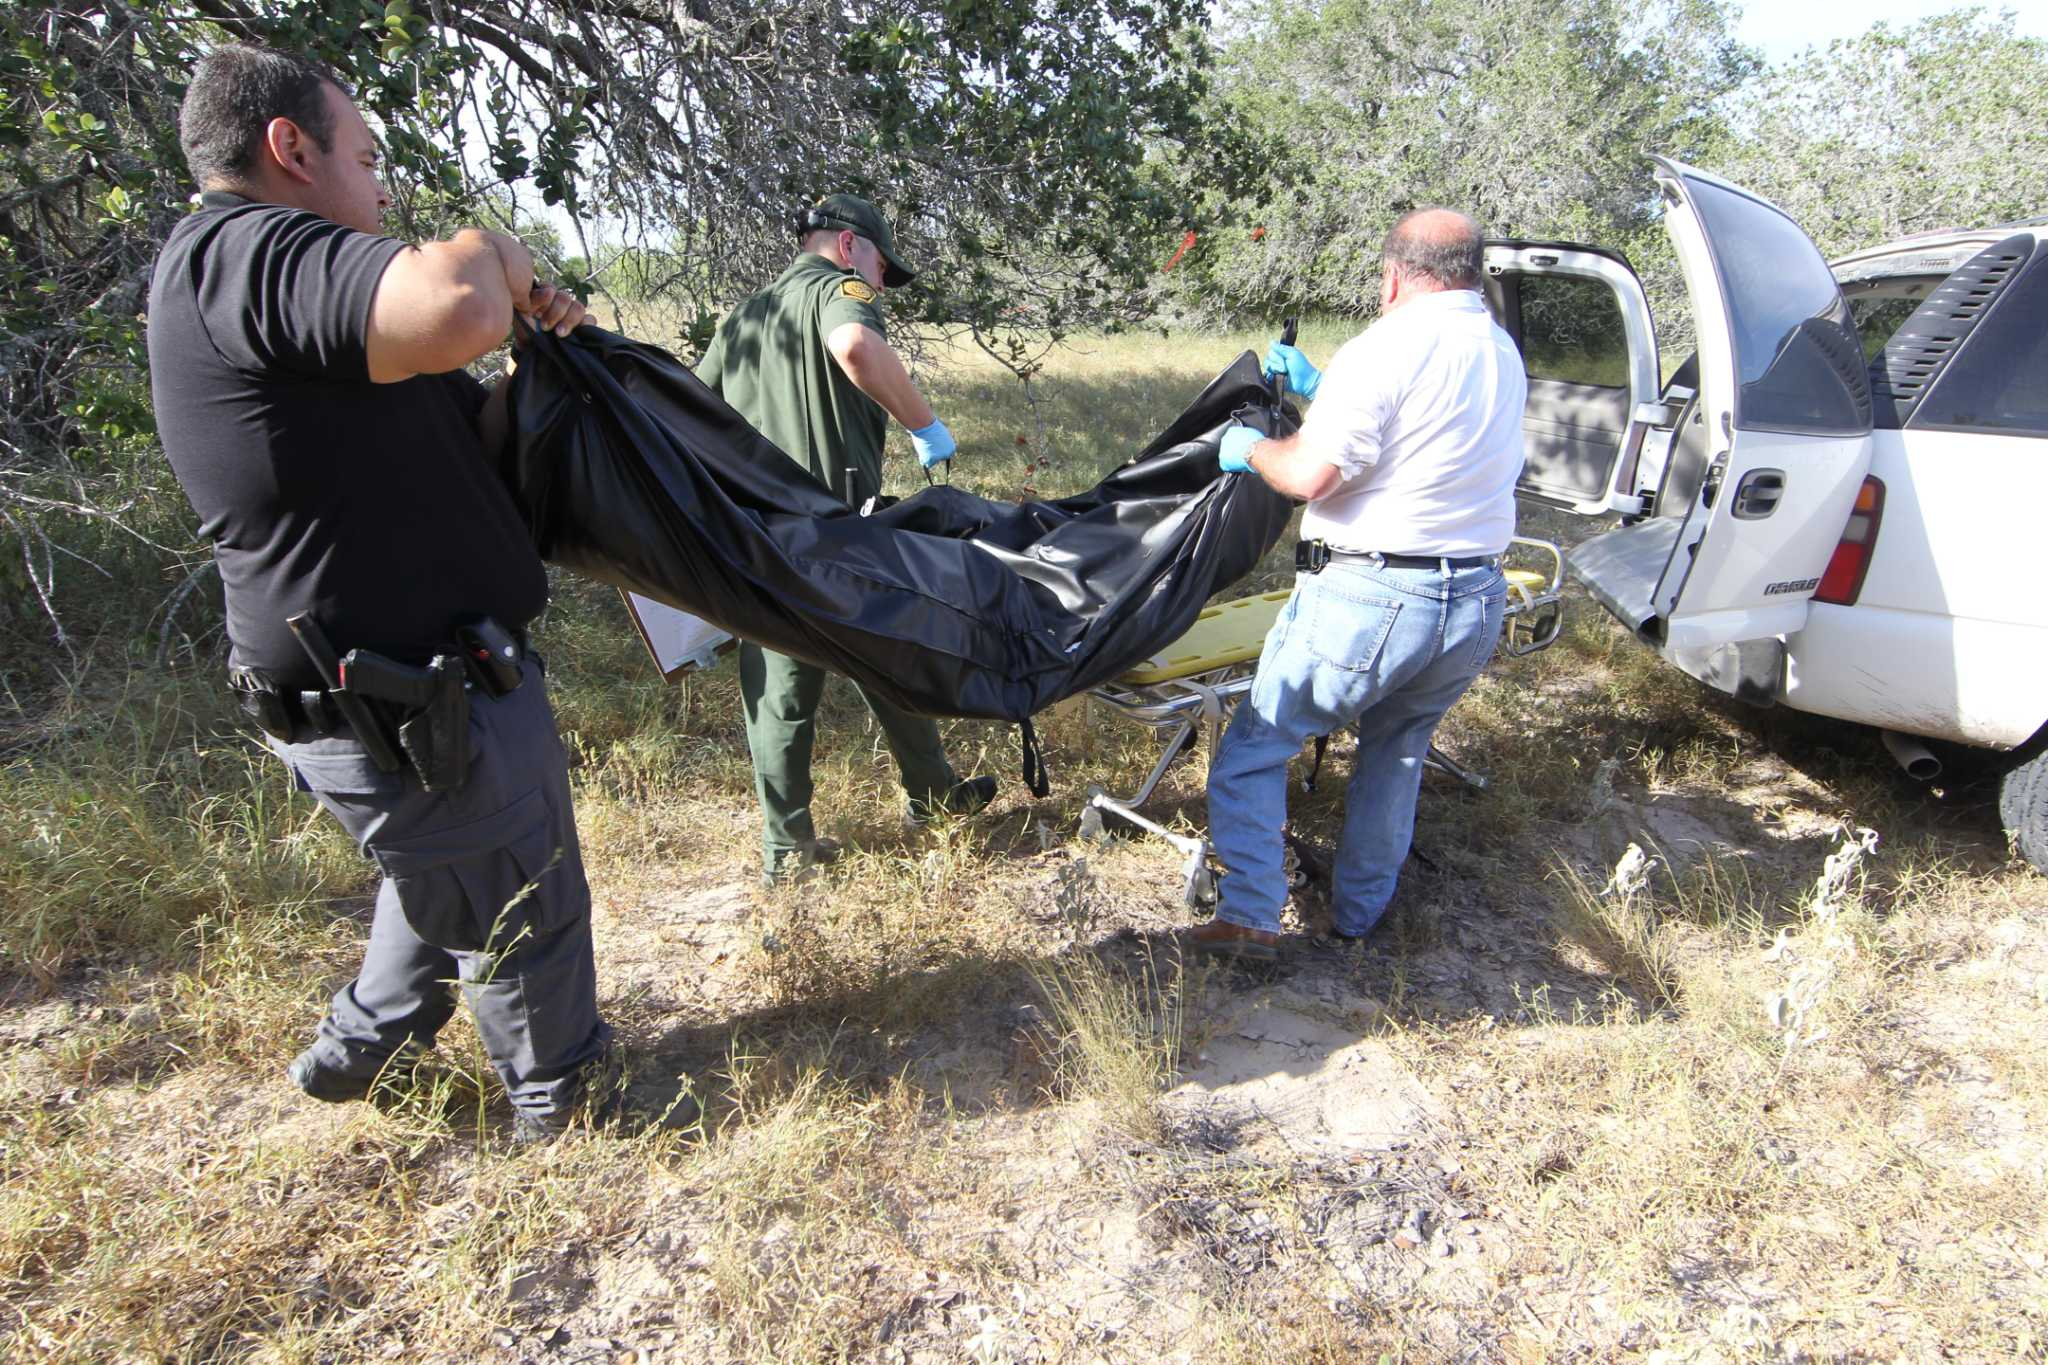 Editorial: Body bags - a morbid measure of America's inaction on immigration